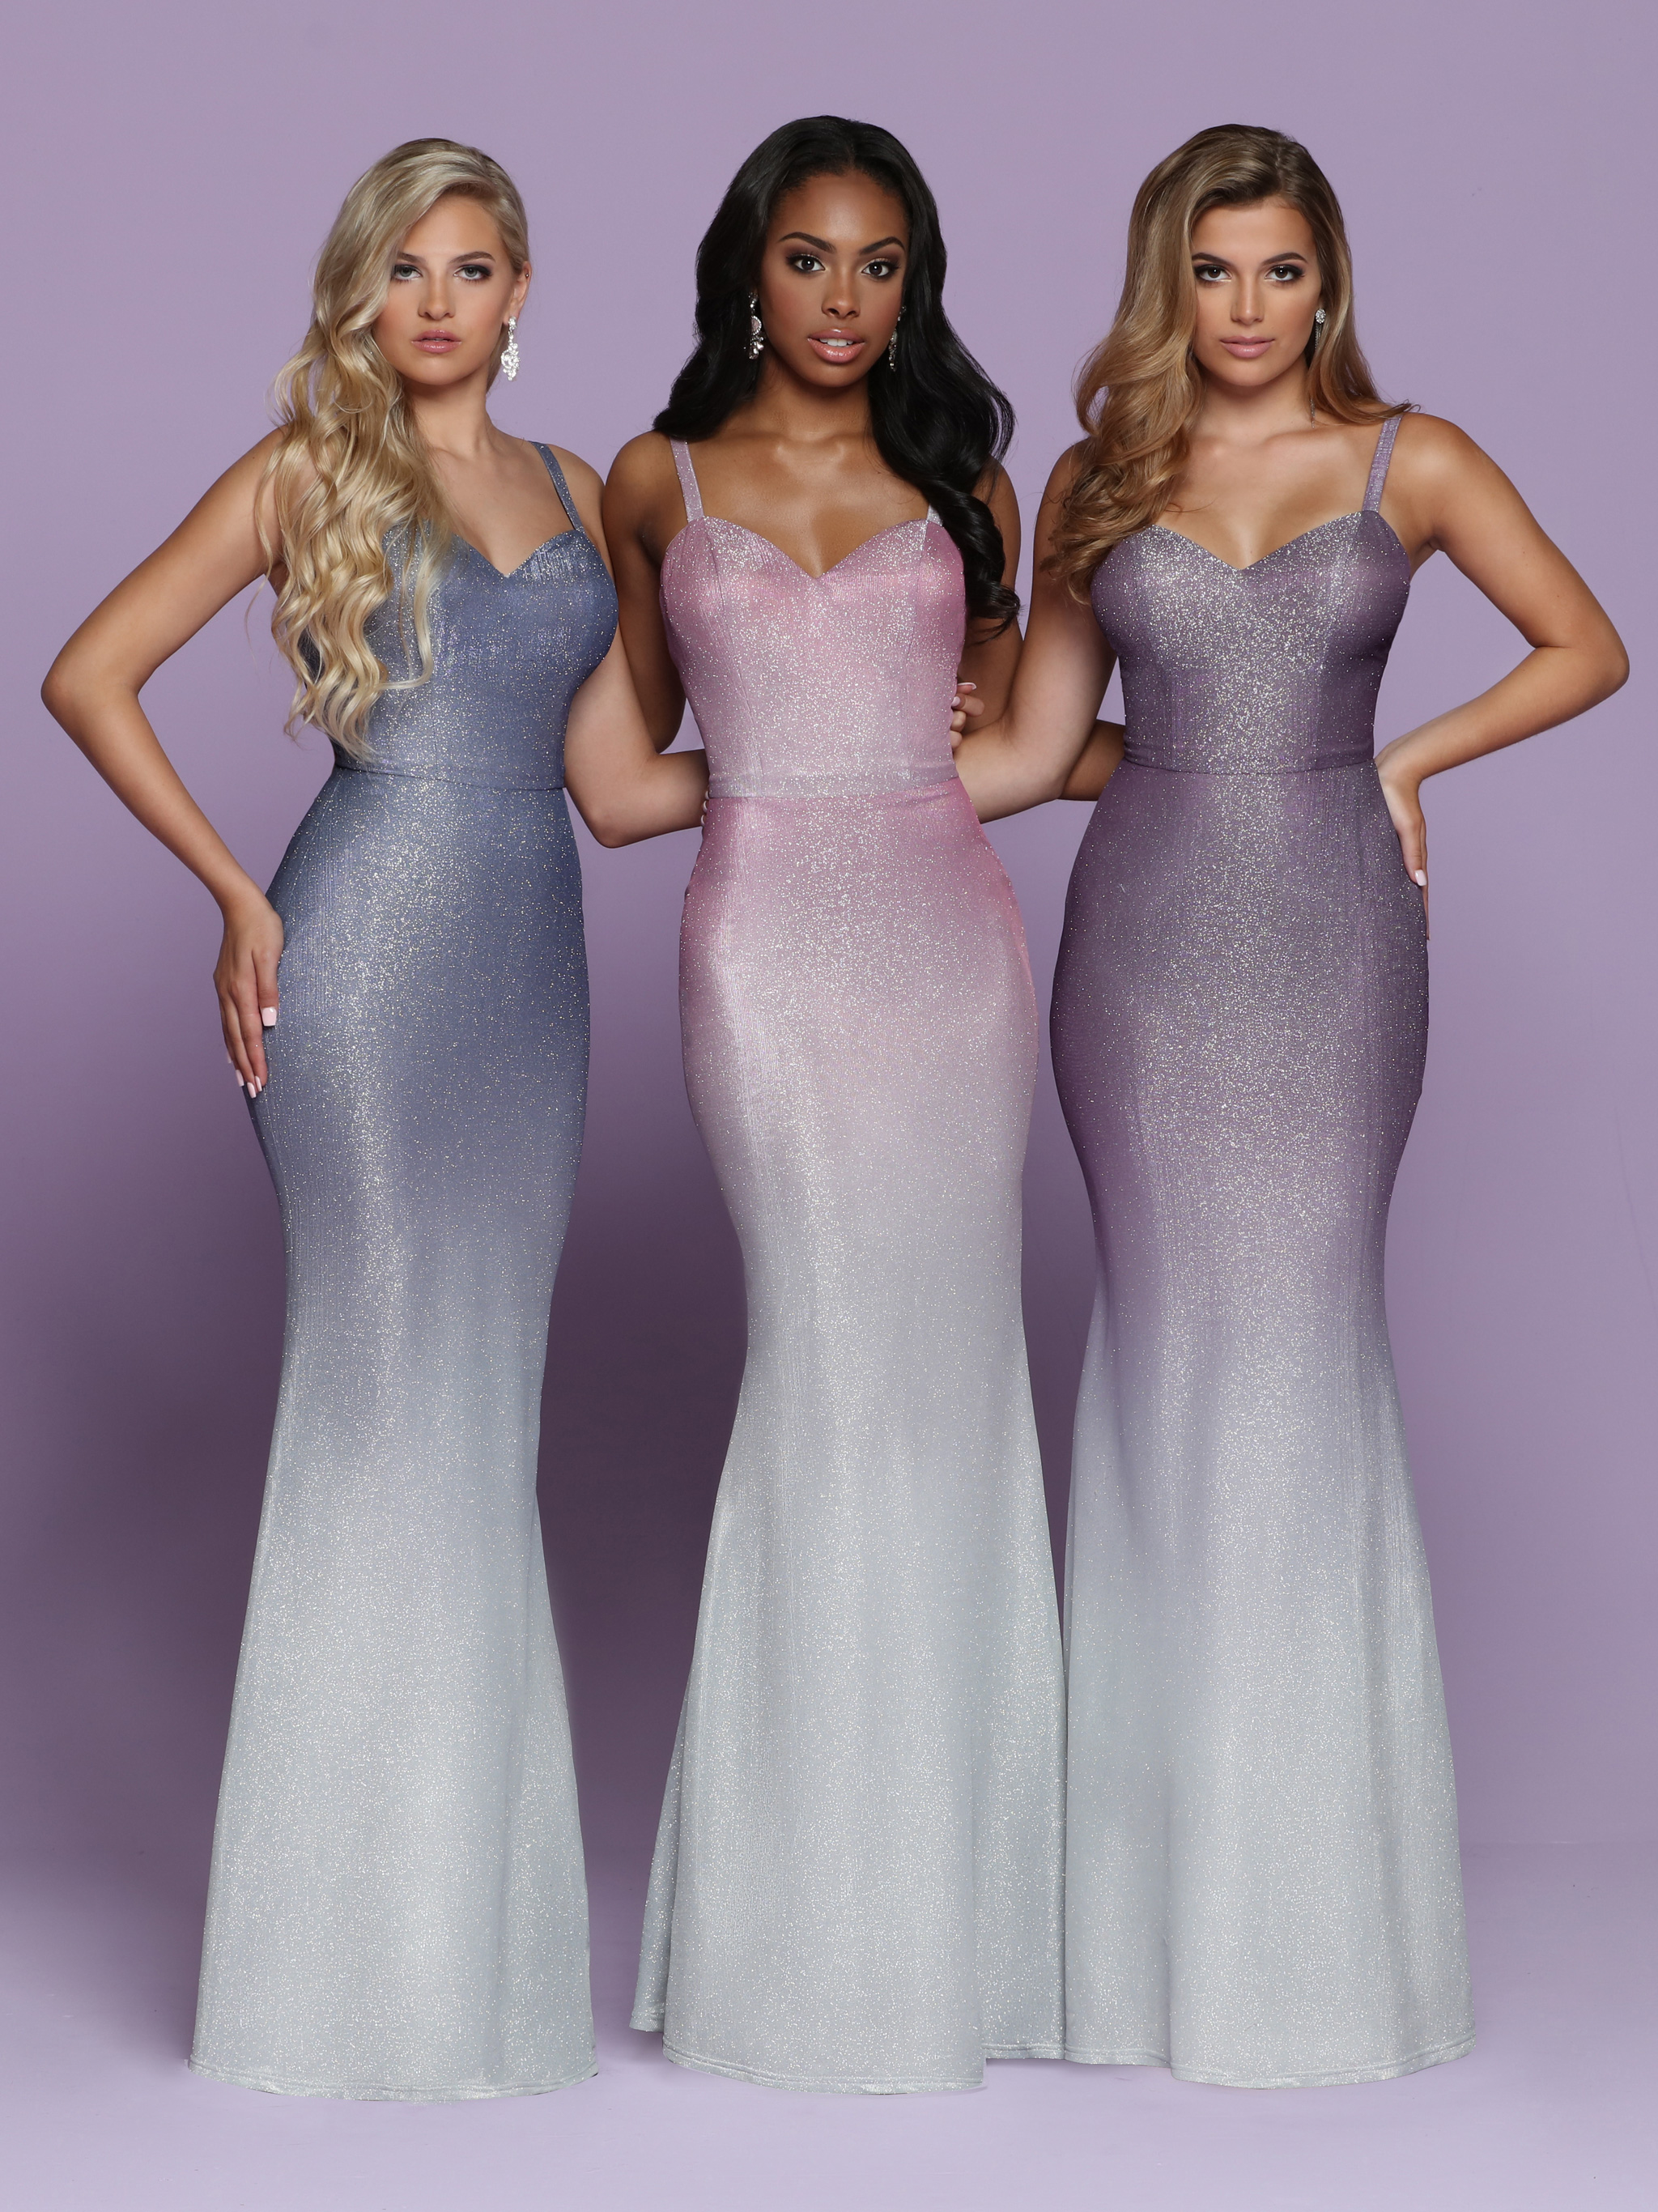 Ombre Prom Dresses & Evening Gowns for 2020 – Sparkle Prom